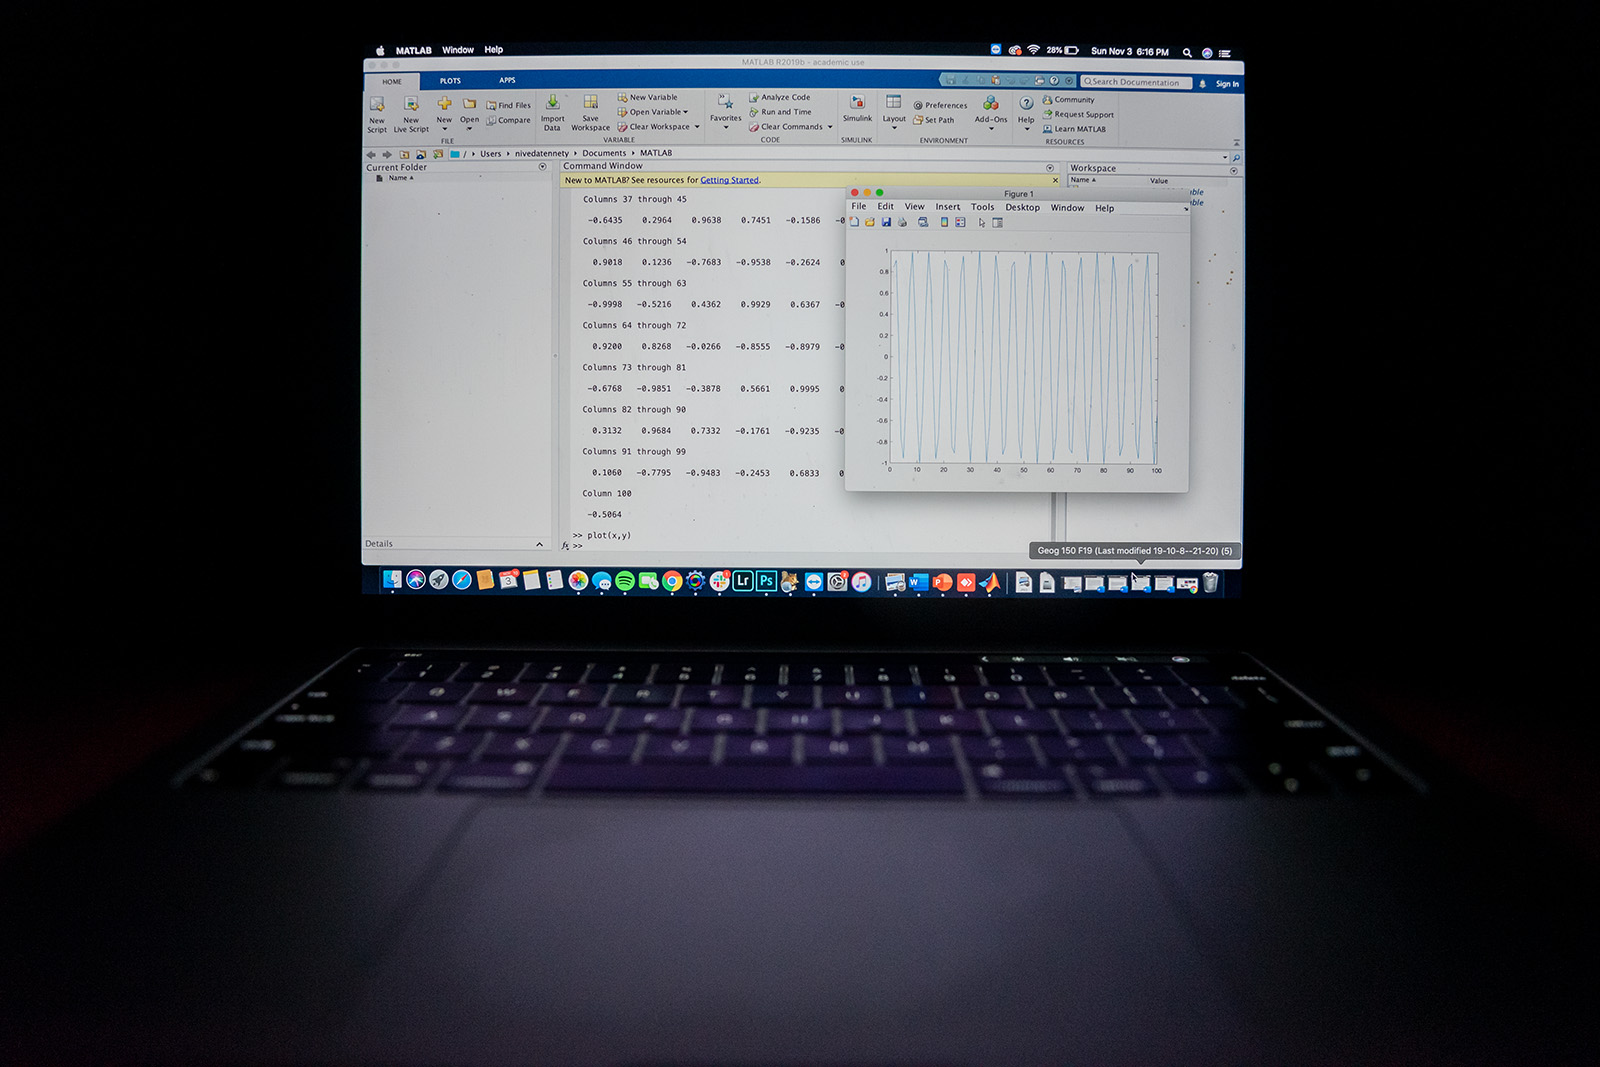 Best Laptop for Ucla Computer Science